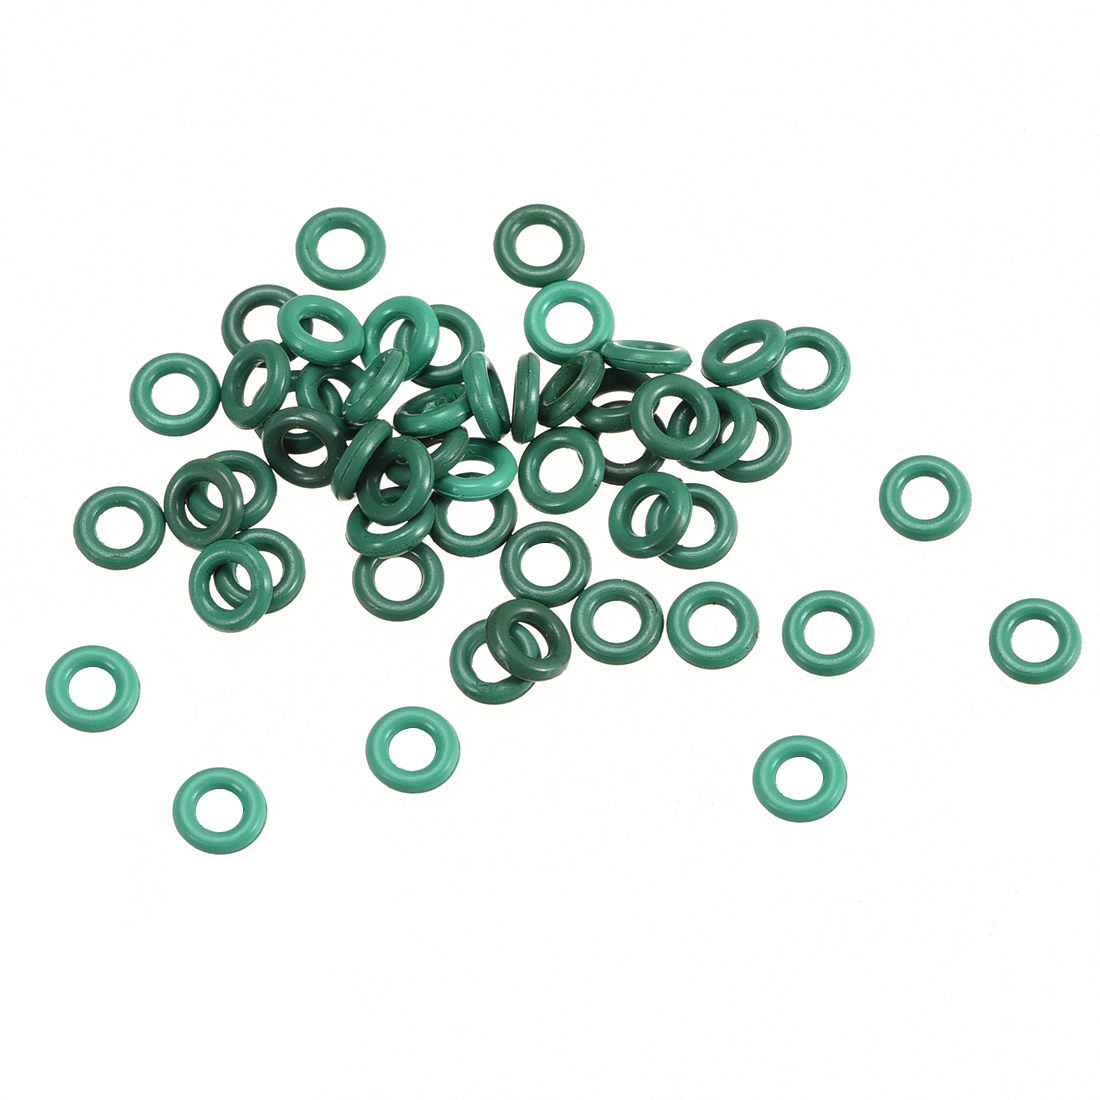 50Pcs 4mm x 1mm Nitrile Rubber O Ring FKM Heat Resistant Sealing Grommets Green